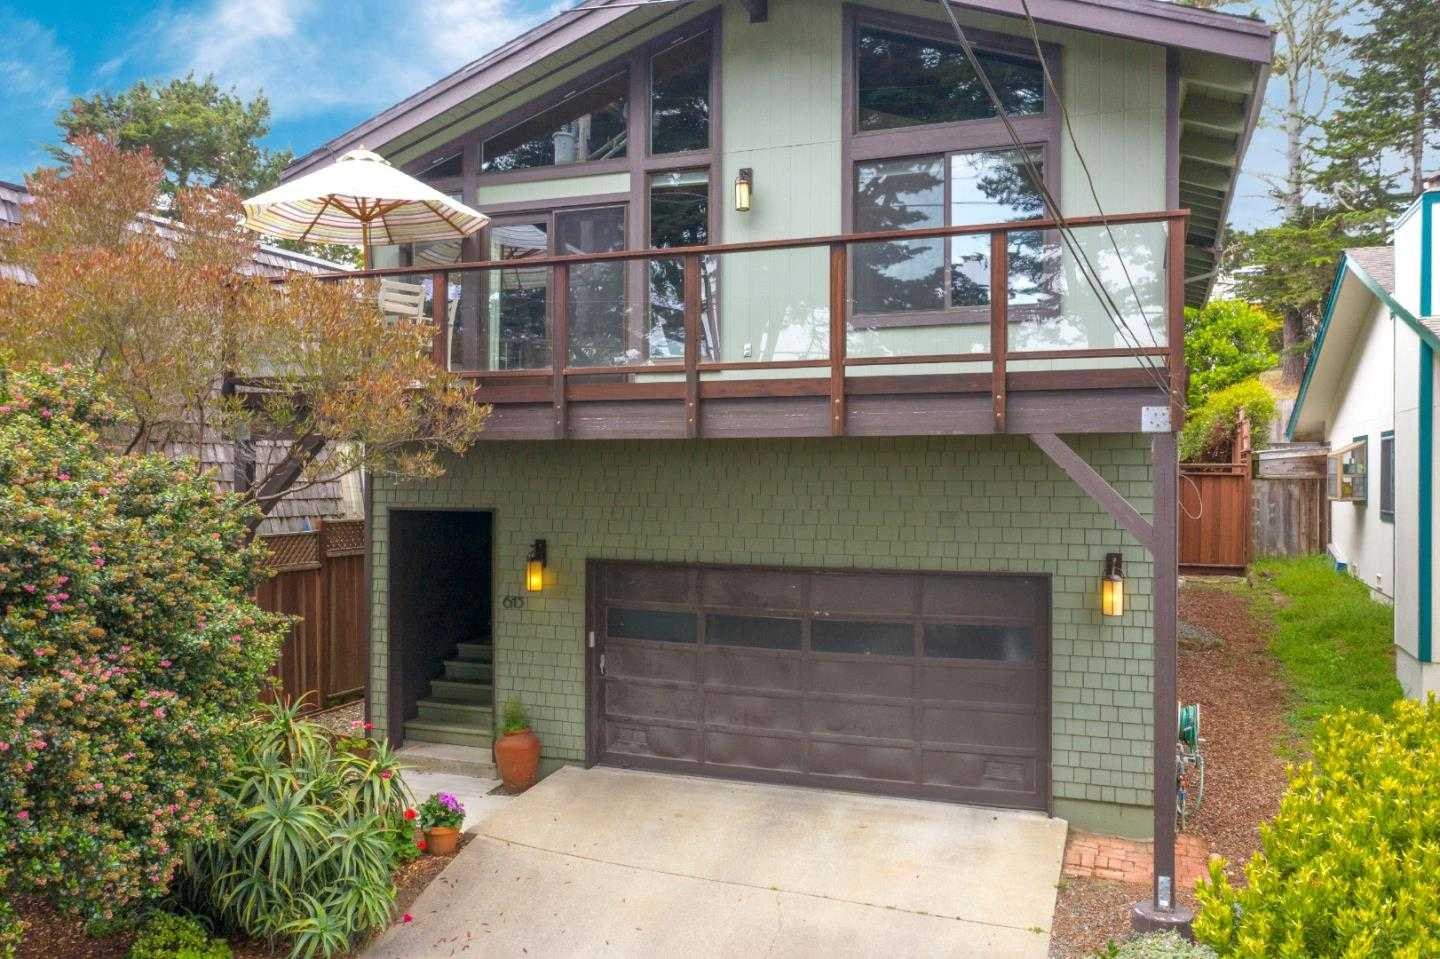 $1,185,000 - 4Br/3Ba -  for Sale in Moss Beach